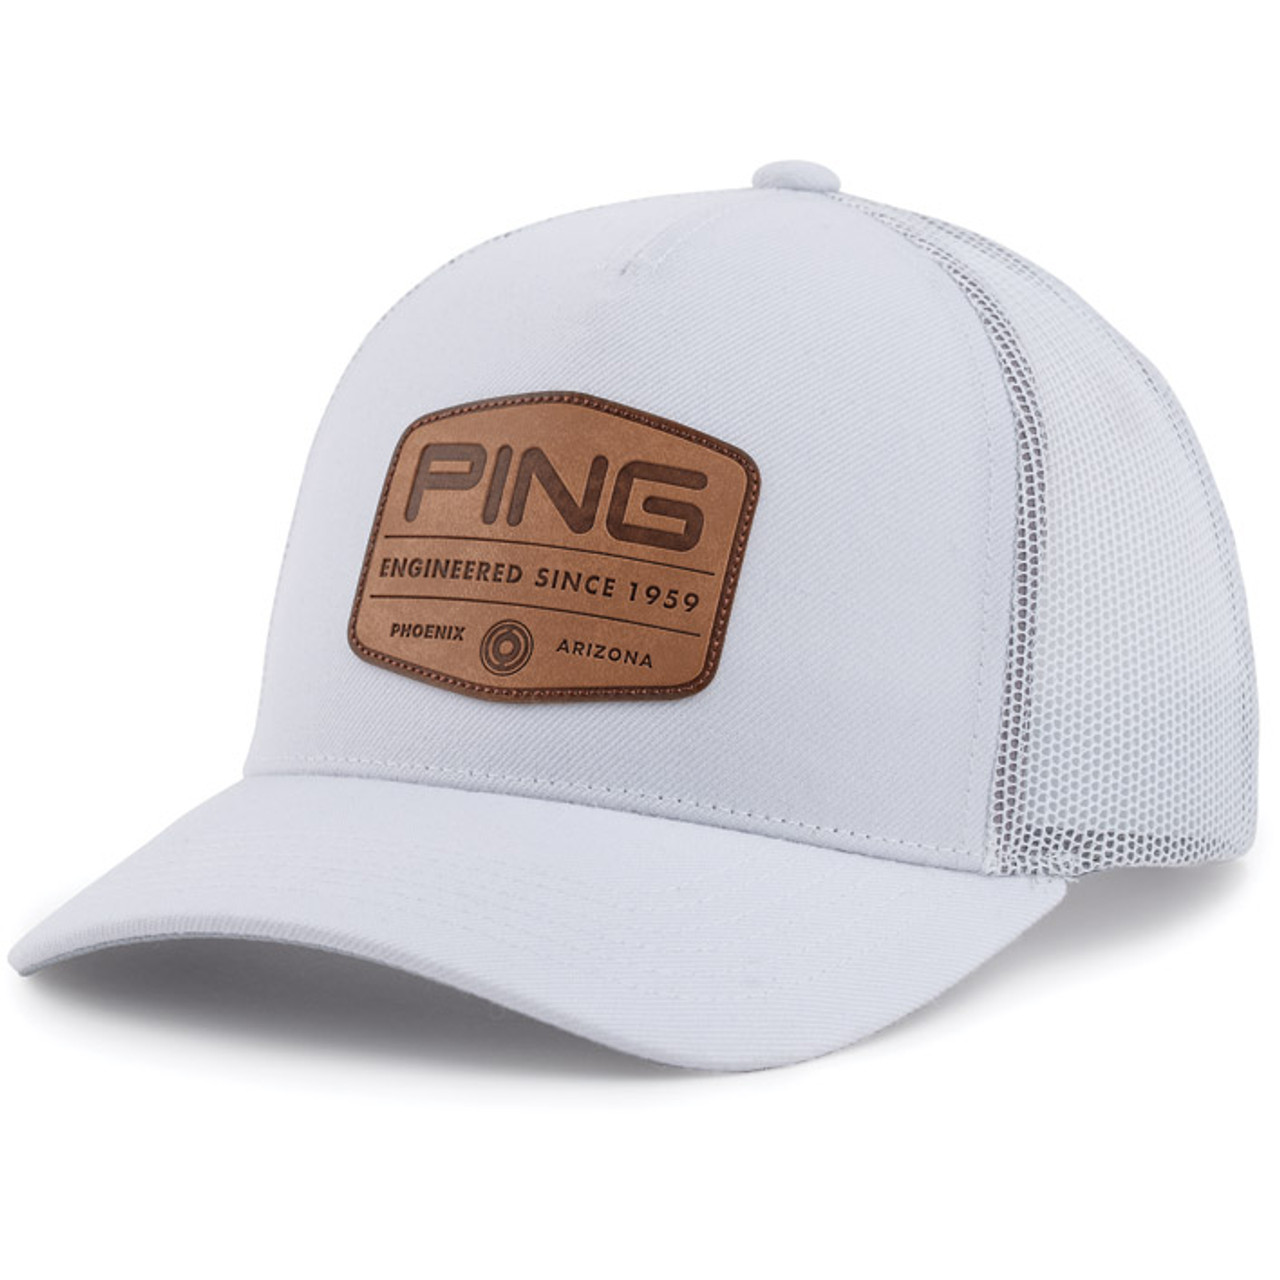 PING TG Patch Cap - White